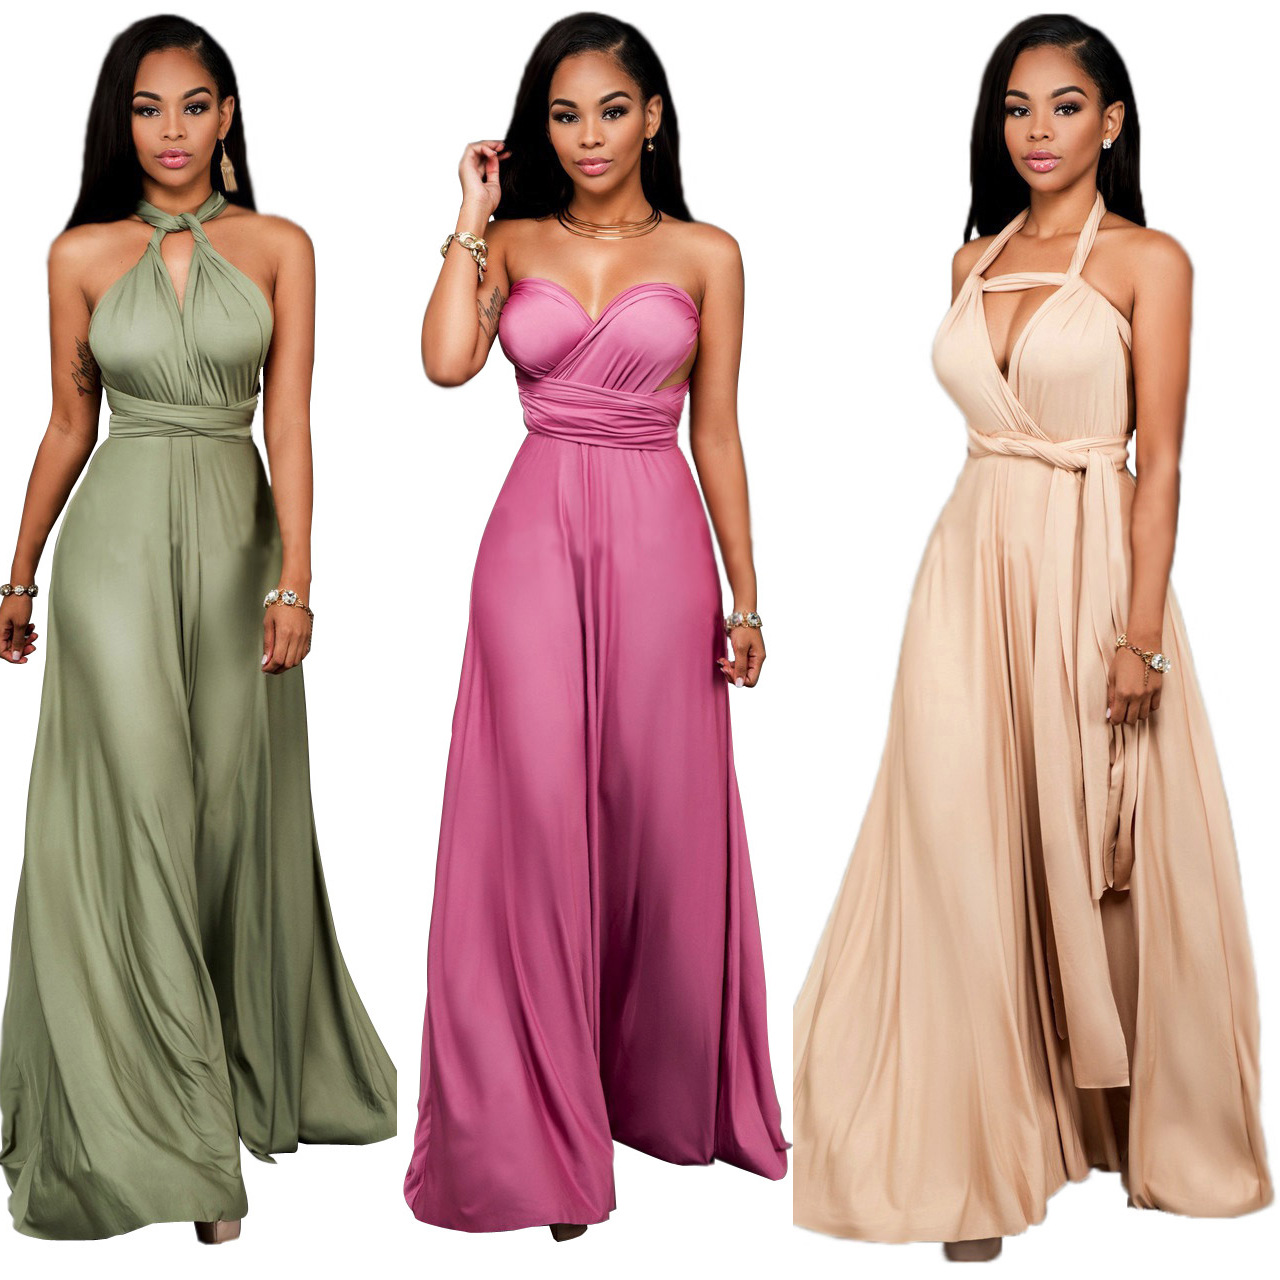 dd942d419e4 Snap Holiday Dresses H And M Eligent Prom Dresses photos on Pinterest